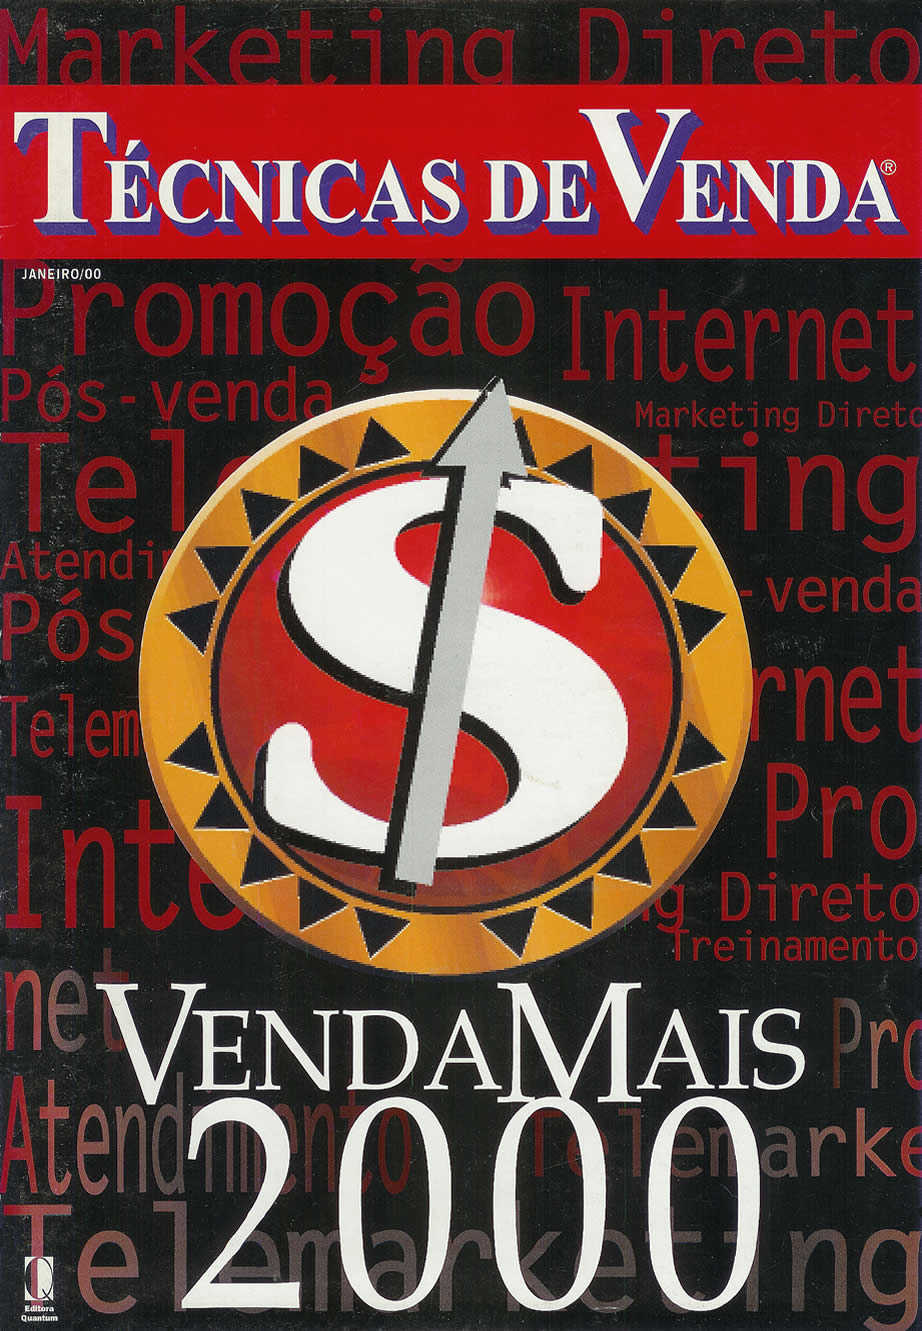 [Jan/00] Venda mais 2000